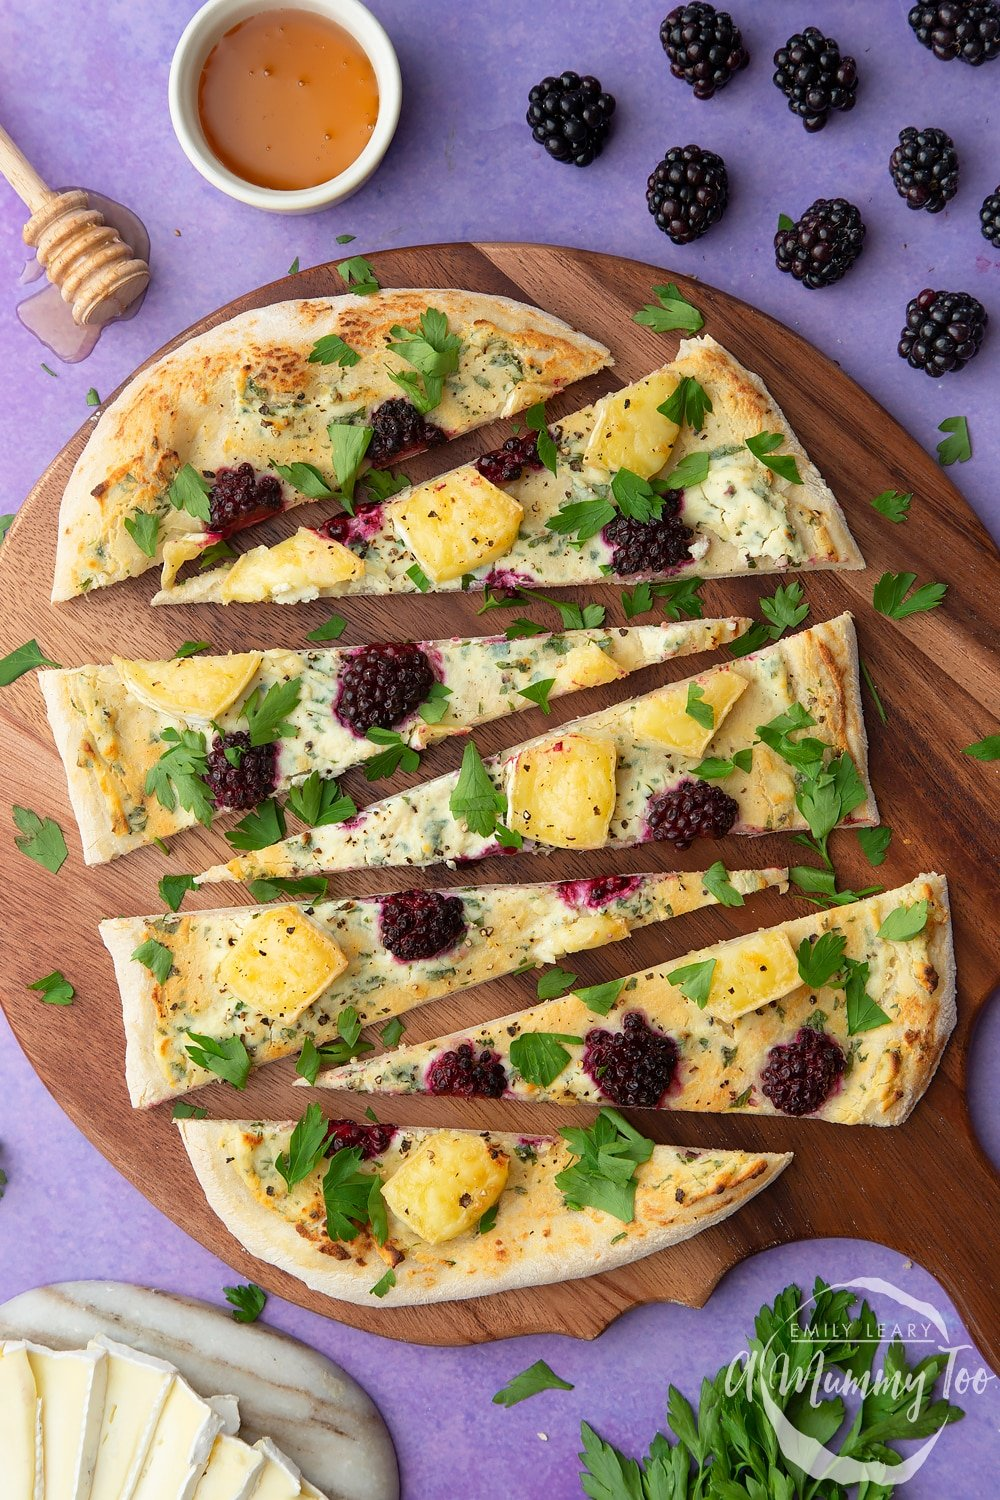 Brie and blackberry pizza sliced on a wooden board and scattered with fresh parsley. Ingredients surround the board.